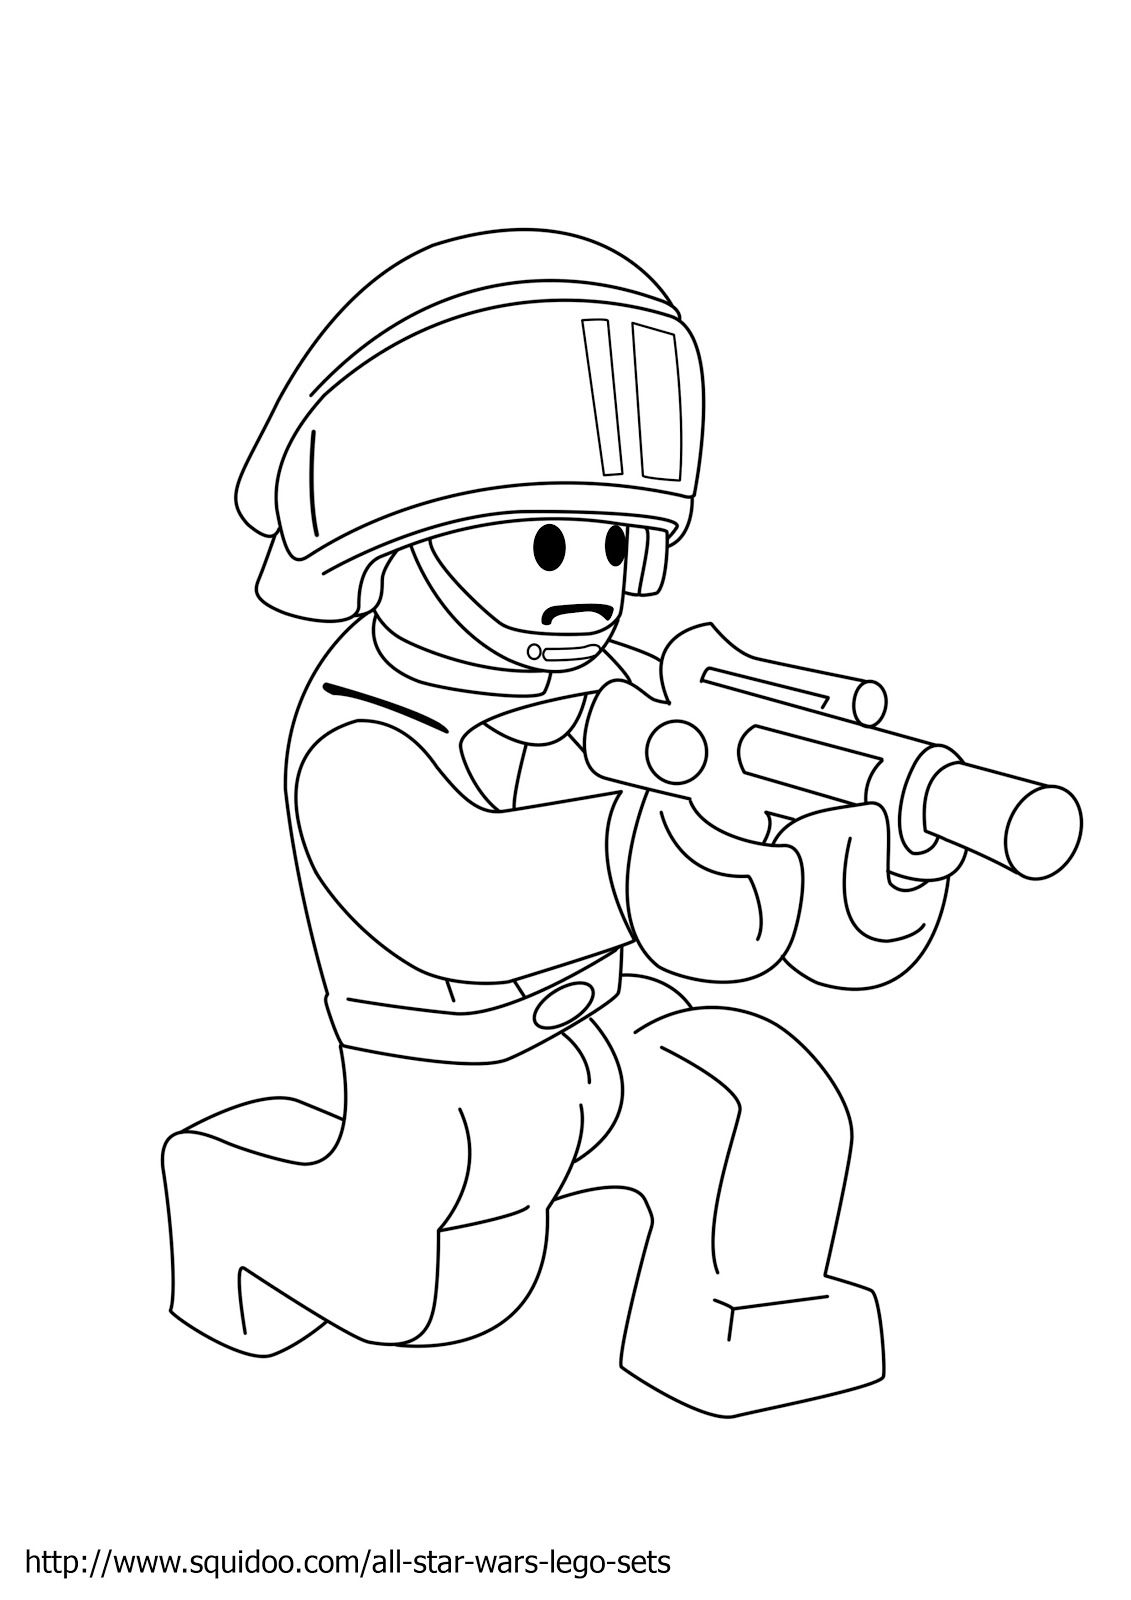 Lego City Undercover Coloring Pages At Getdrawings Com Free For